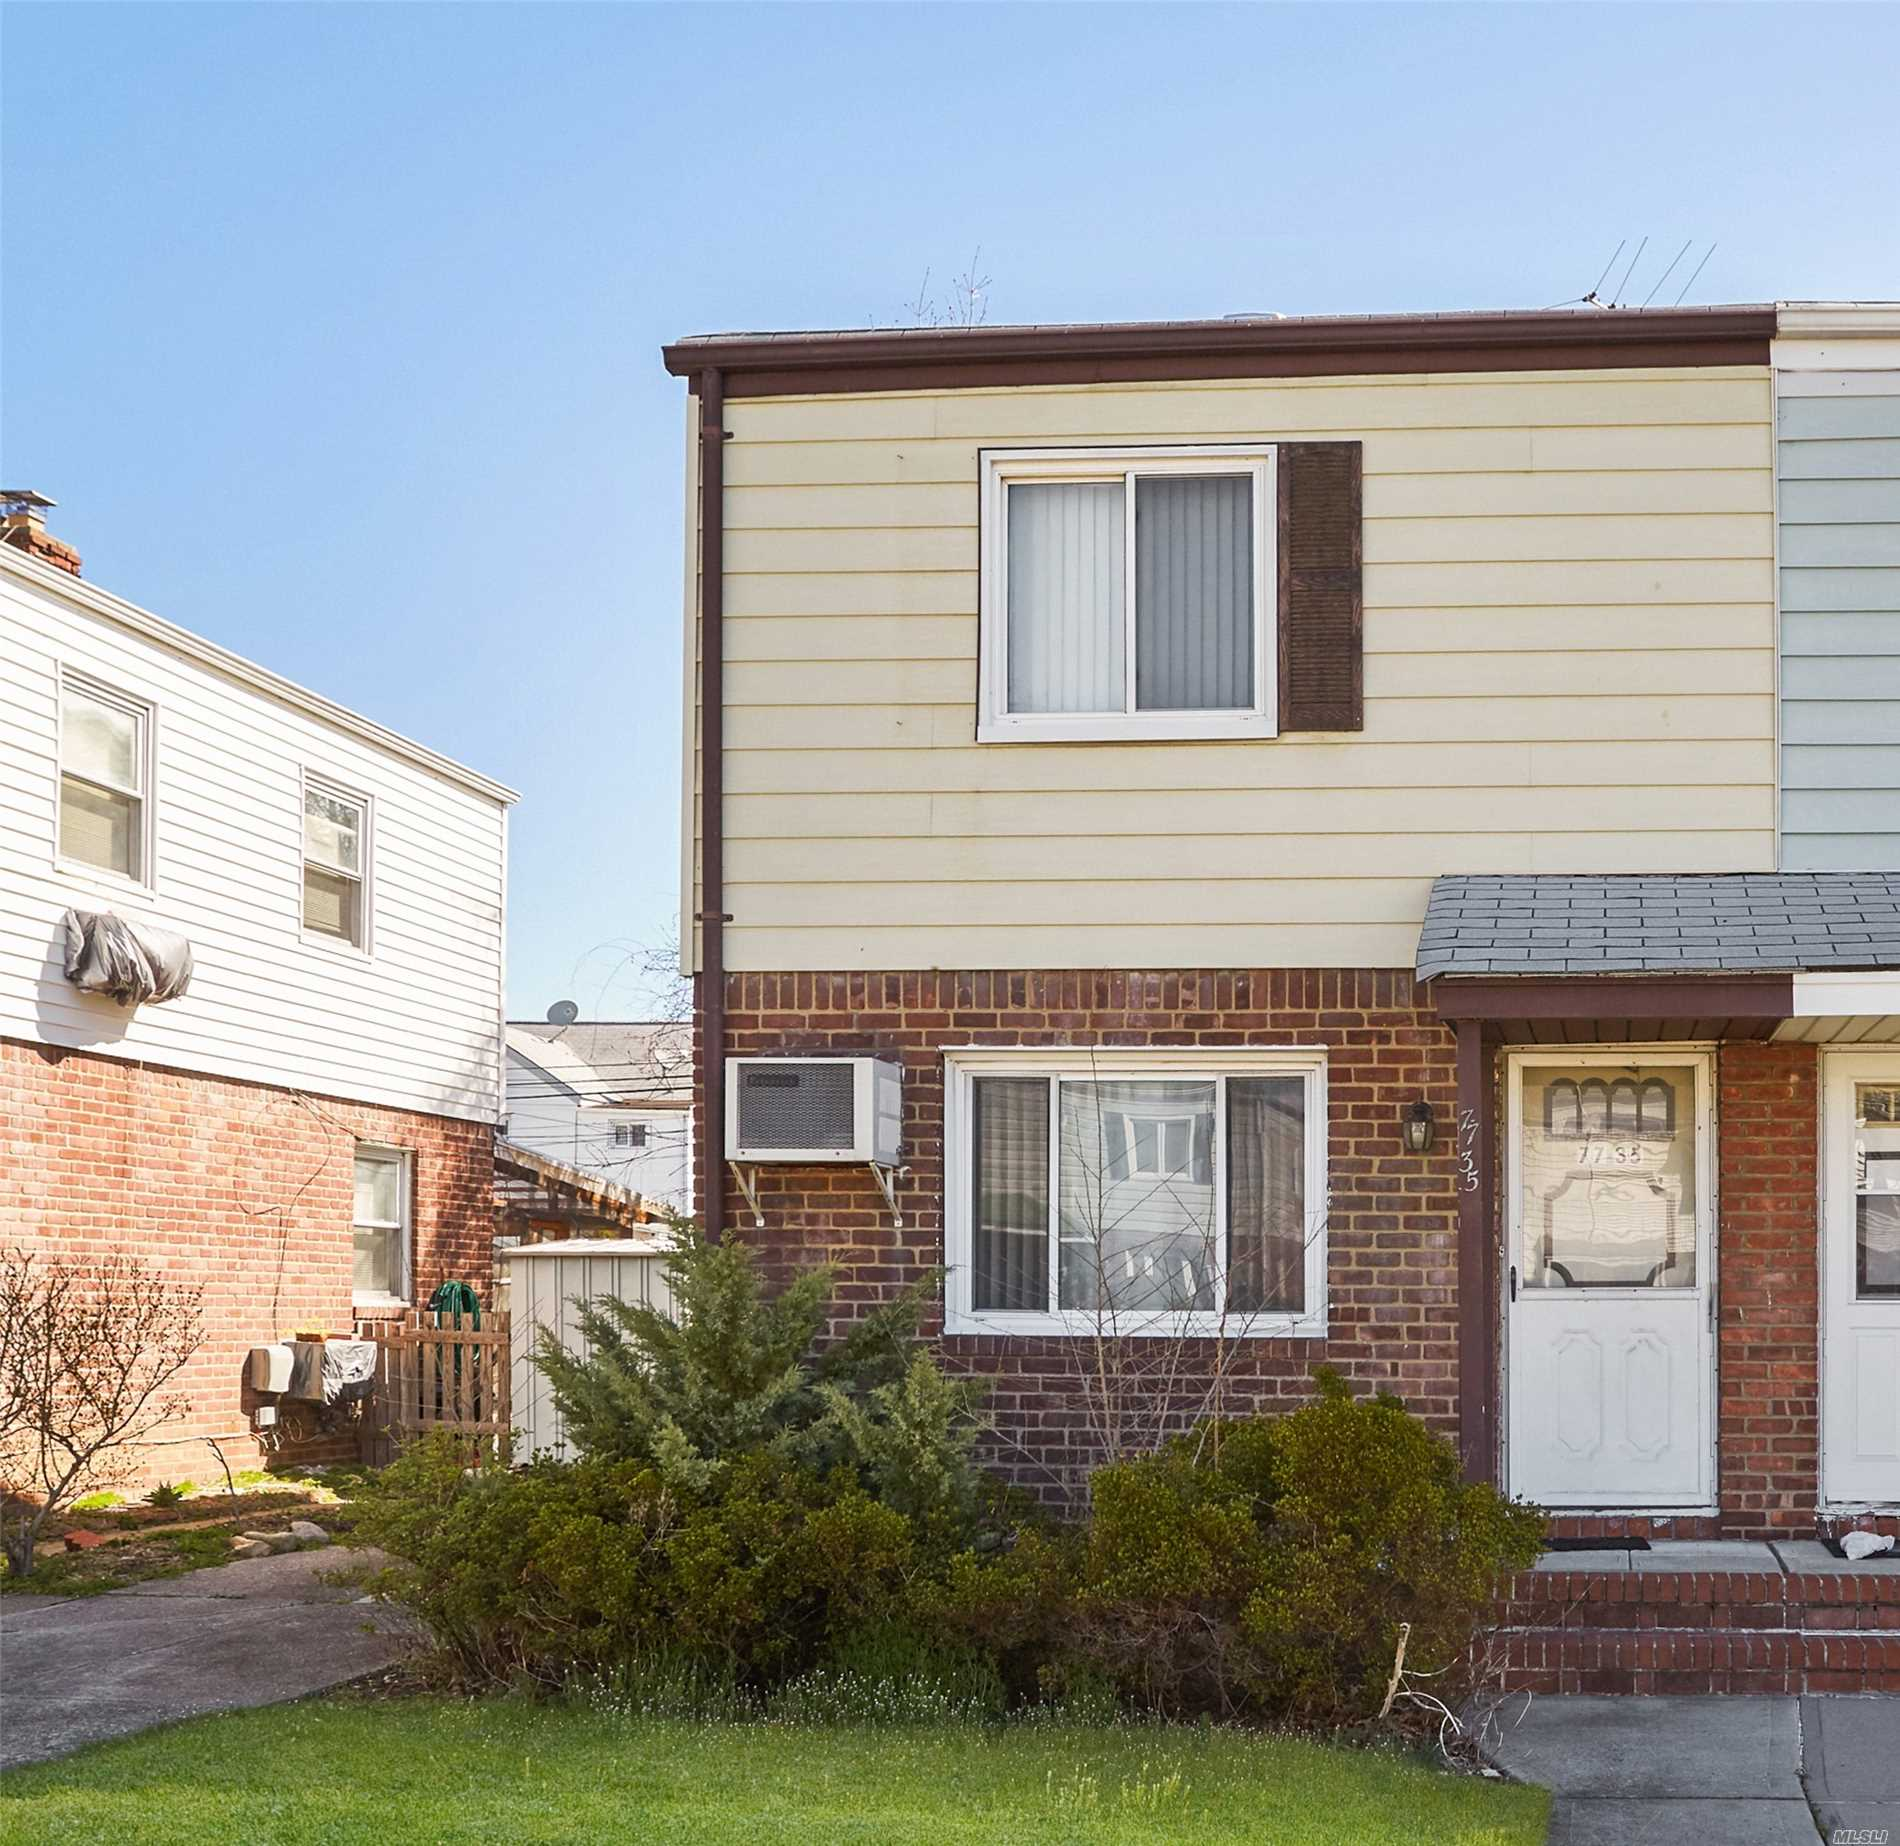 Semi Detached Colonial with 2 Bedrooms, 1 Full Bathroom, Living Room, Eat-in Kitchen And Attic. This Home Also Features a Full Basement and a Private Driveway. Great Location, Close to Shopping and Transportation.